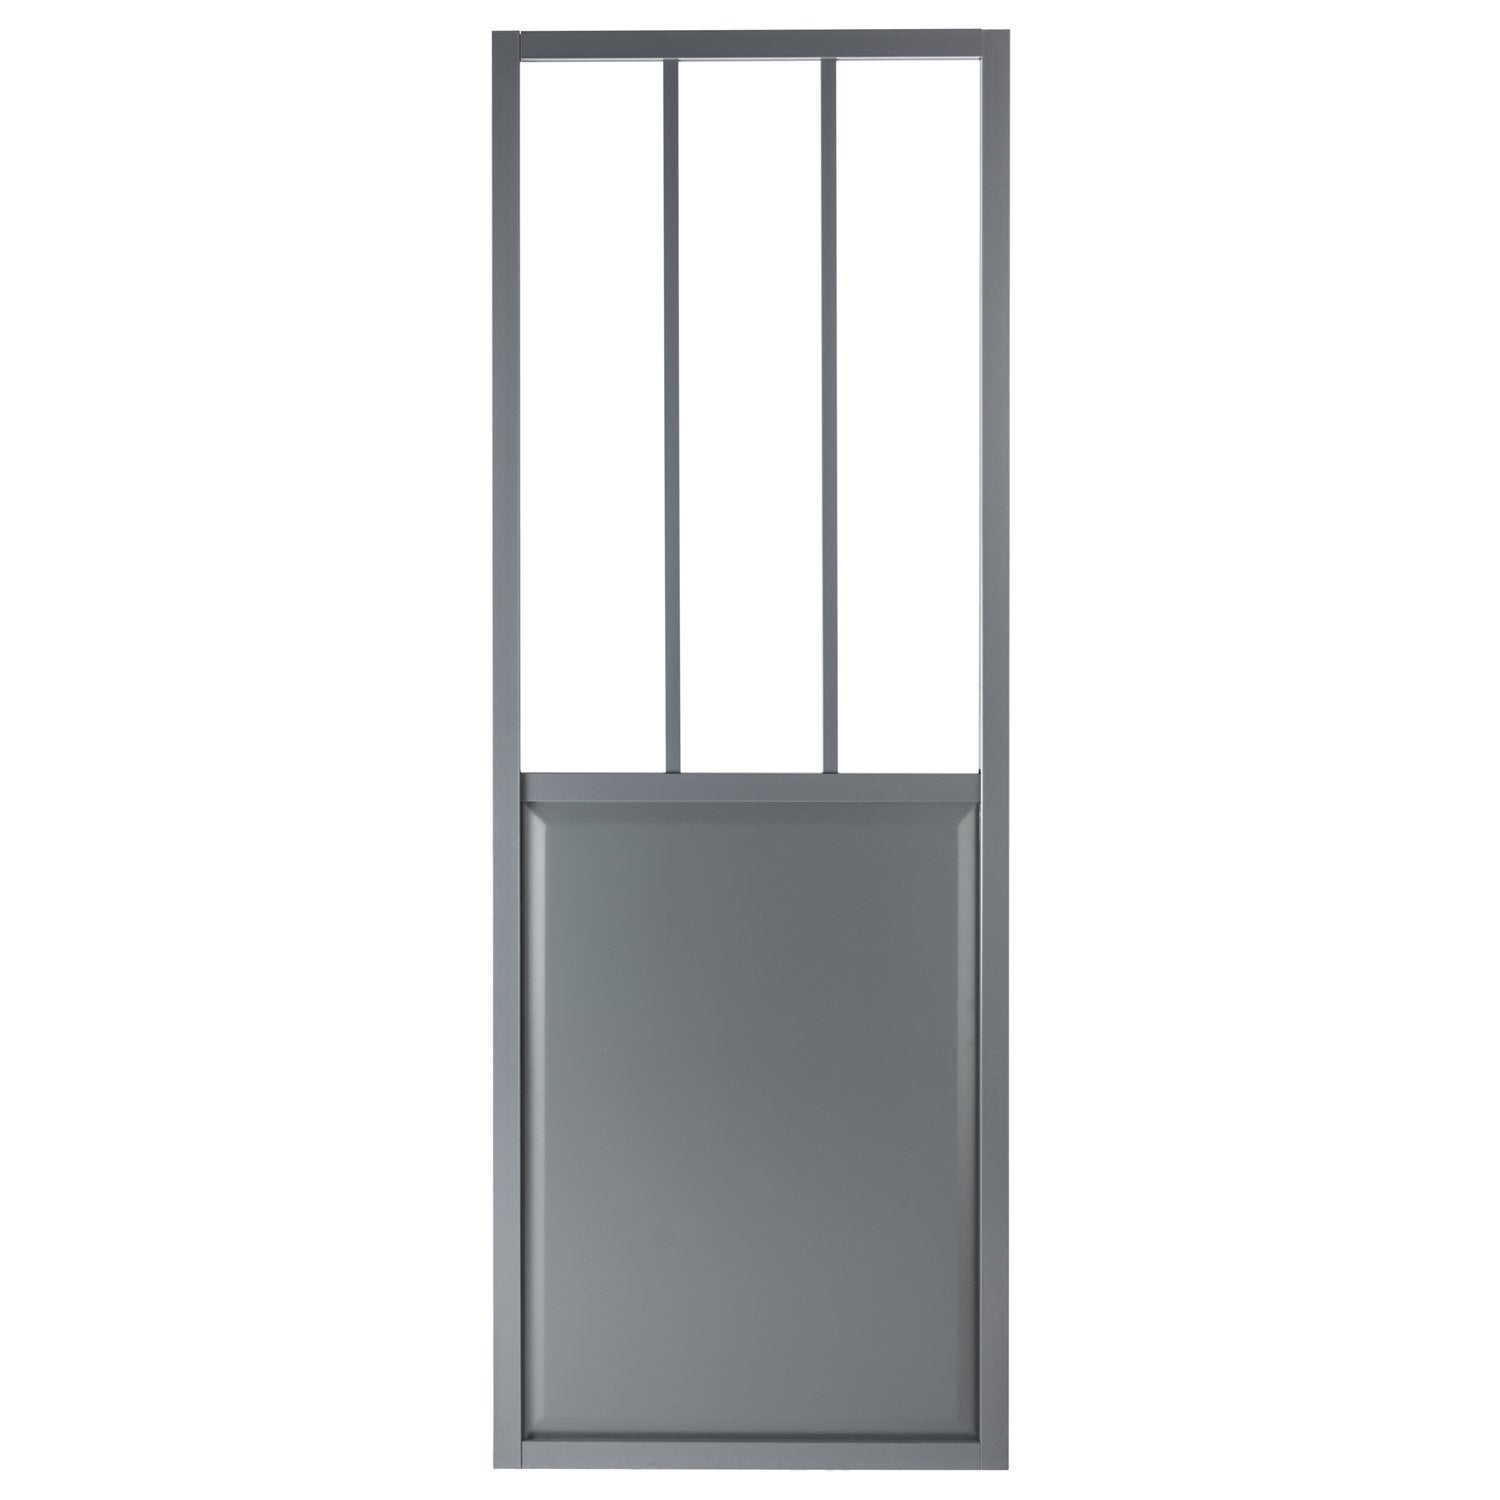 porte coulissante aluminium gris fonc verre tremp. Black Bedroom Furniture Sets. Home Design Ideas